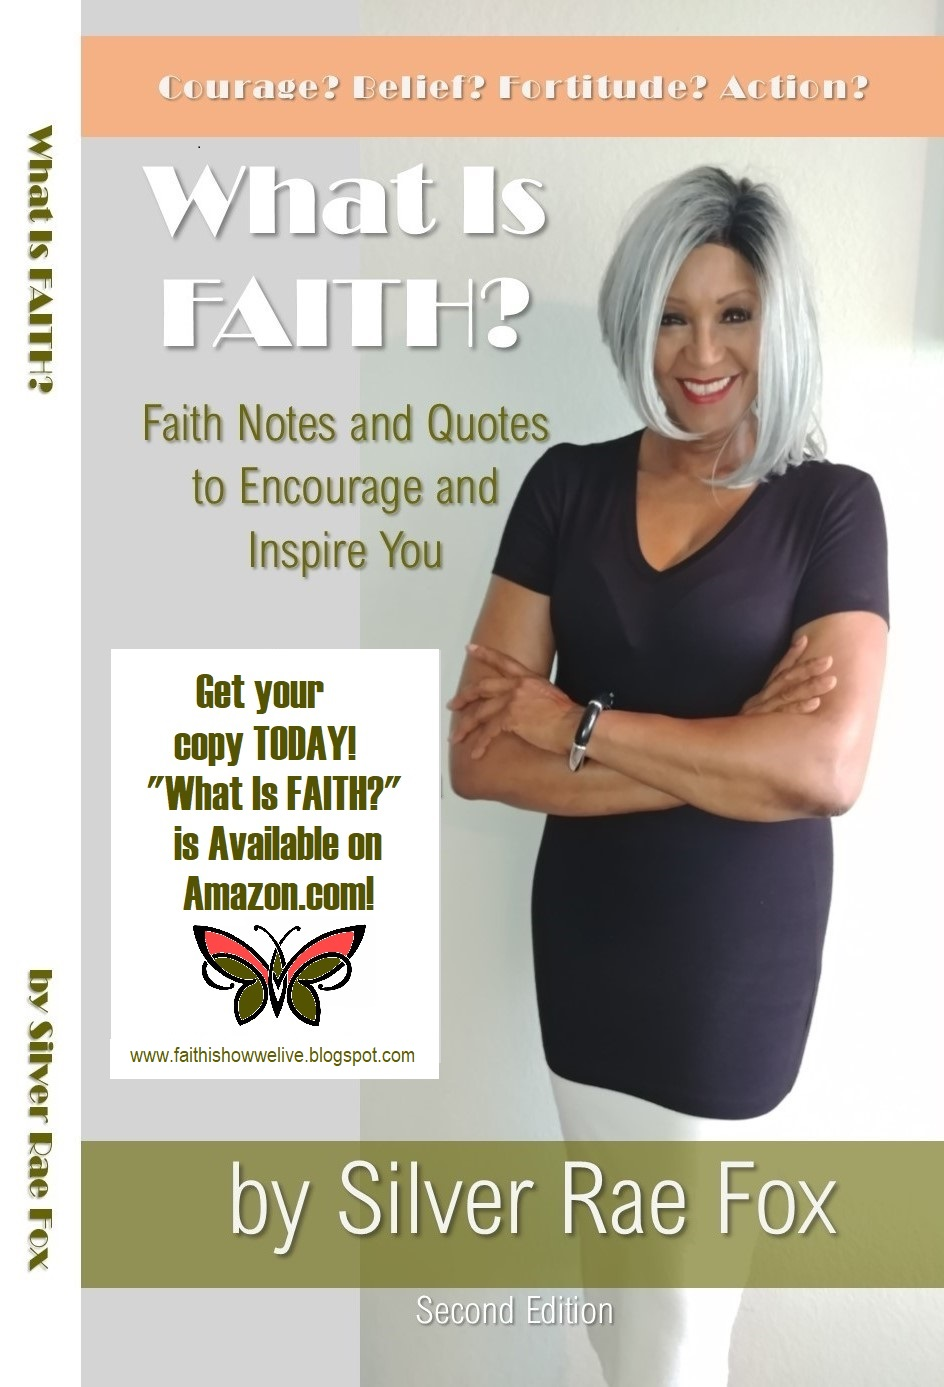 """What Is FAITH?"" by Silver Rae Fox"